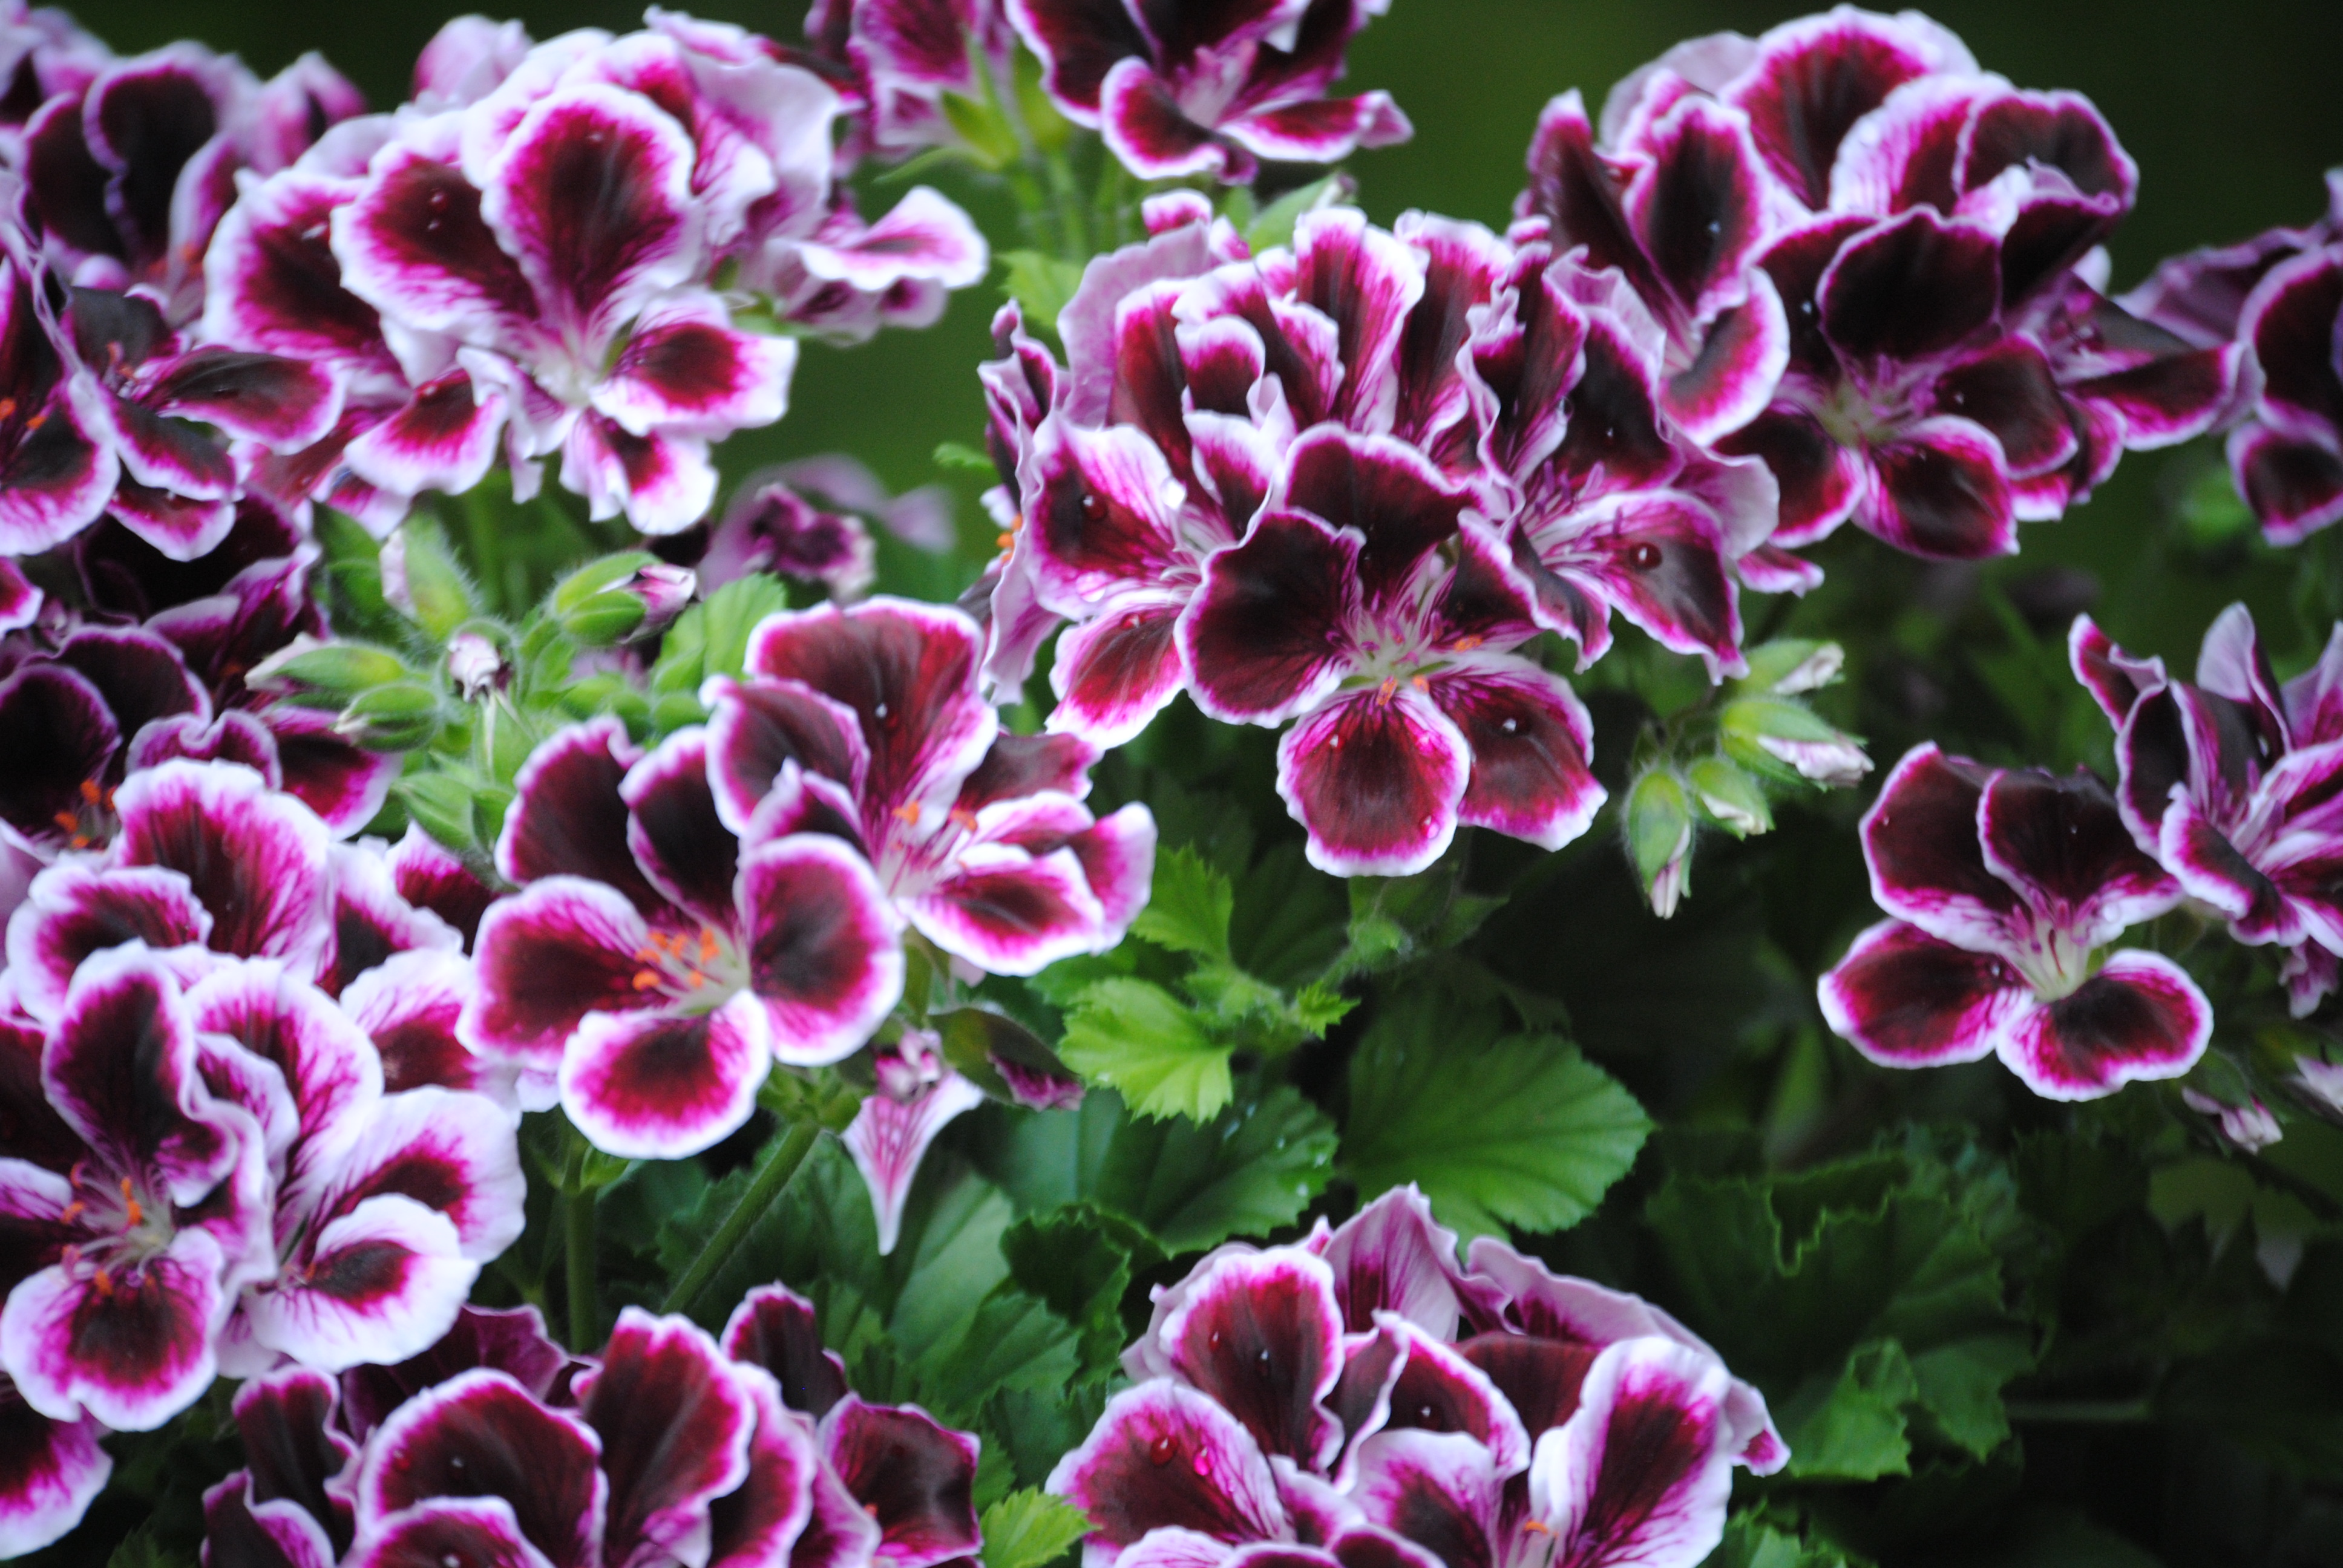 All parts of the geranium are toxic to dogs and cats and can cause vomiting, anorexia, and depression.